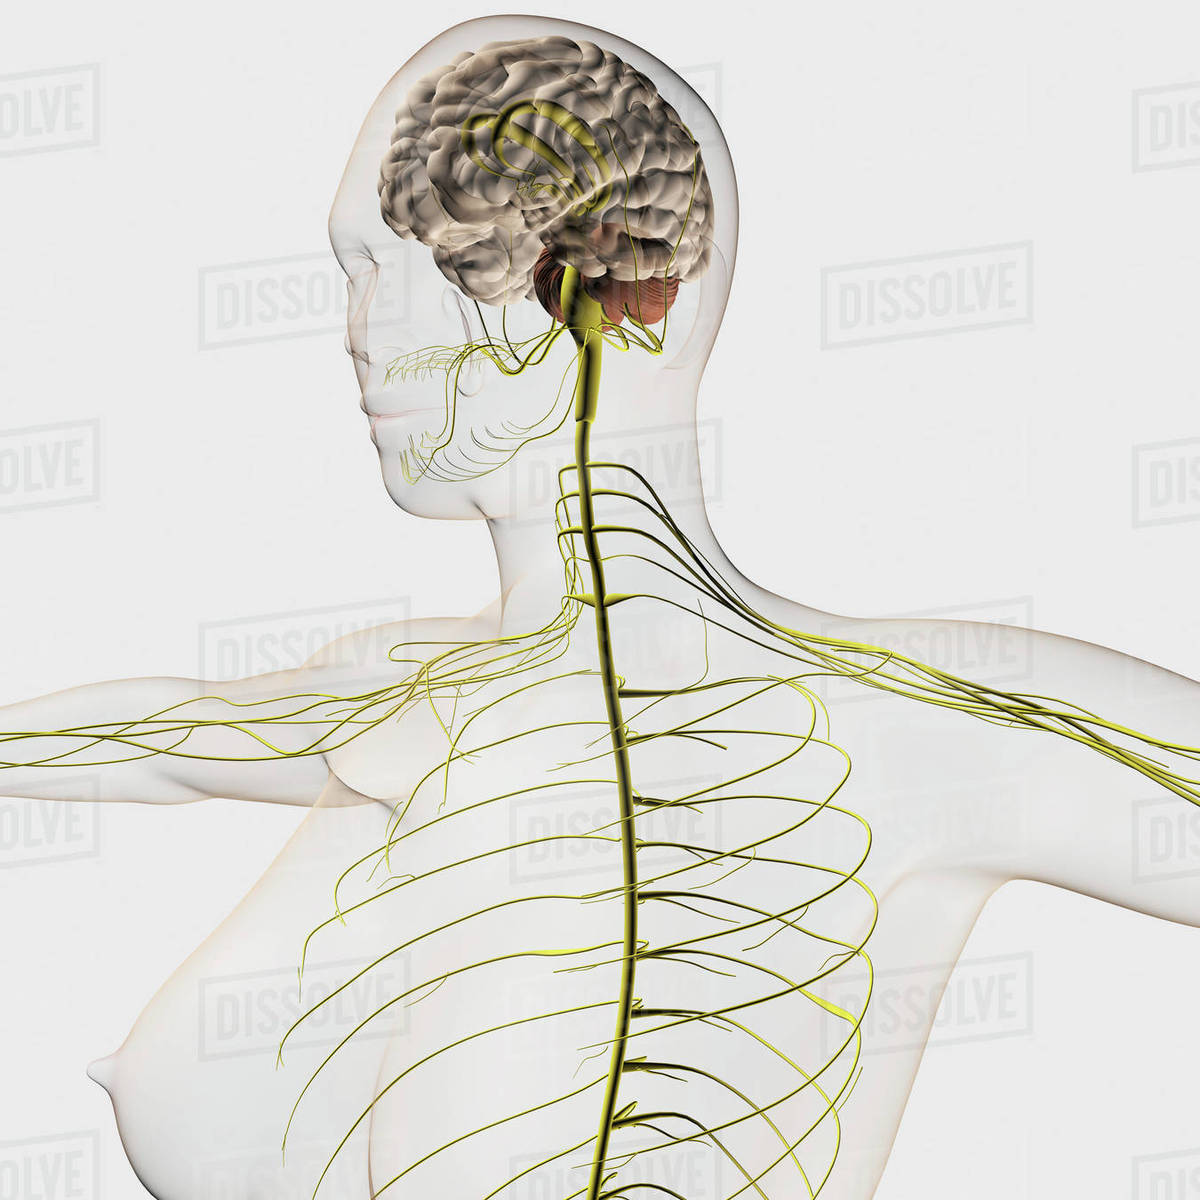 hight resolution of medical illustration of the human nervous system and brain